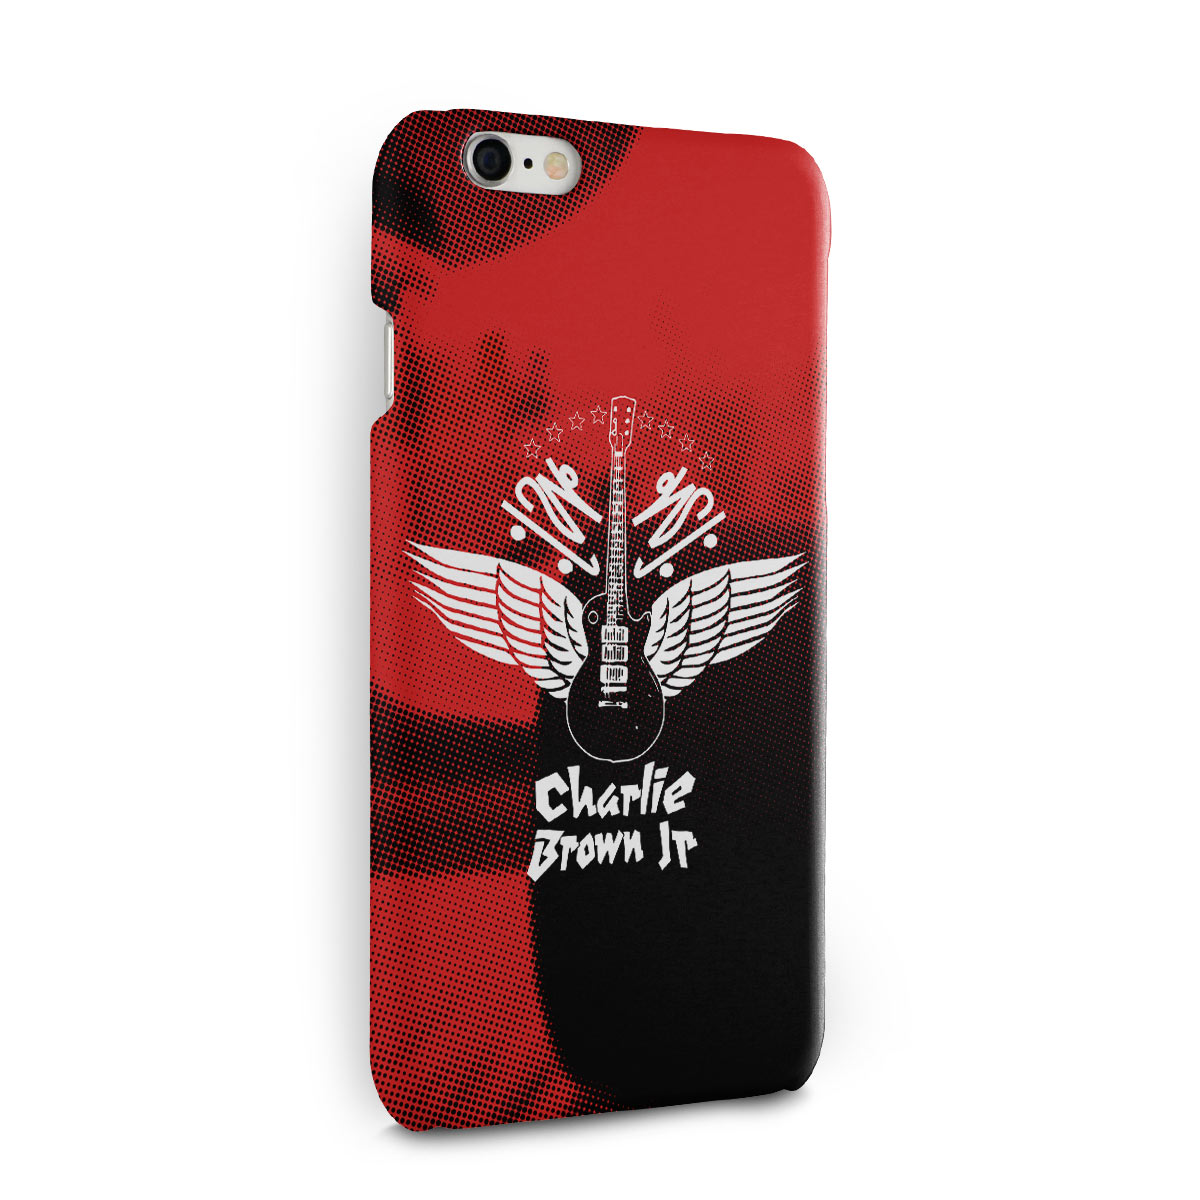 Capa para iPhone 6/6S Charlie Brown Jr. Imunidade Musical